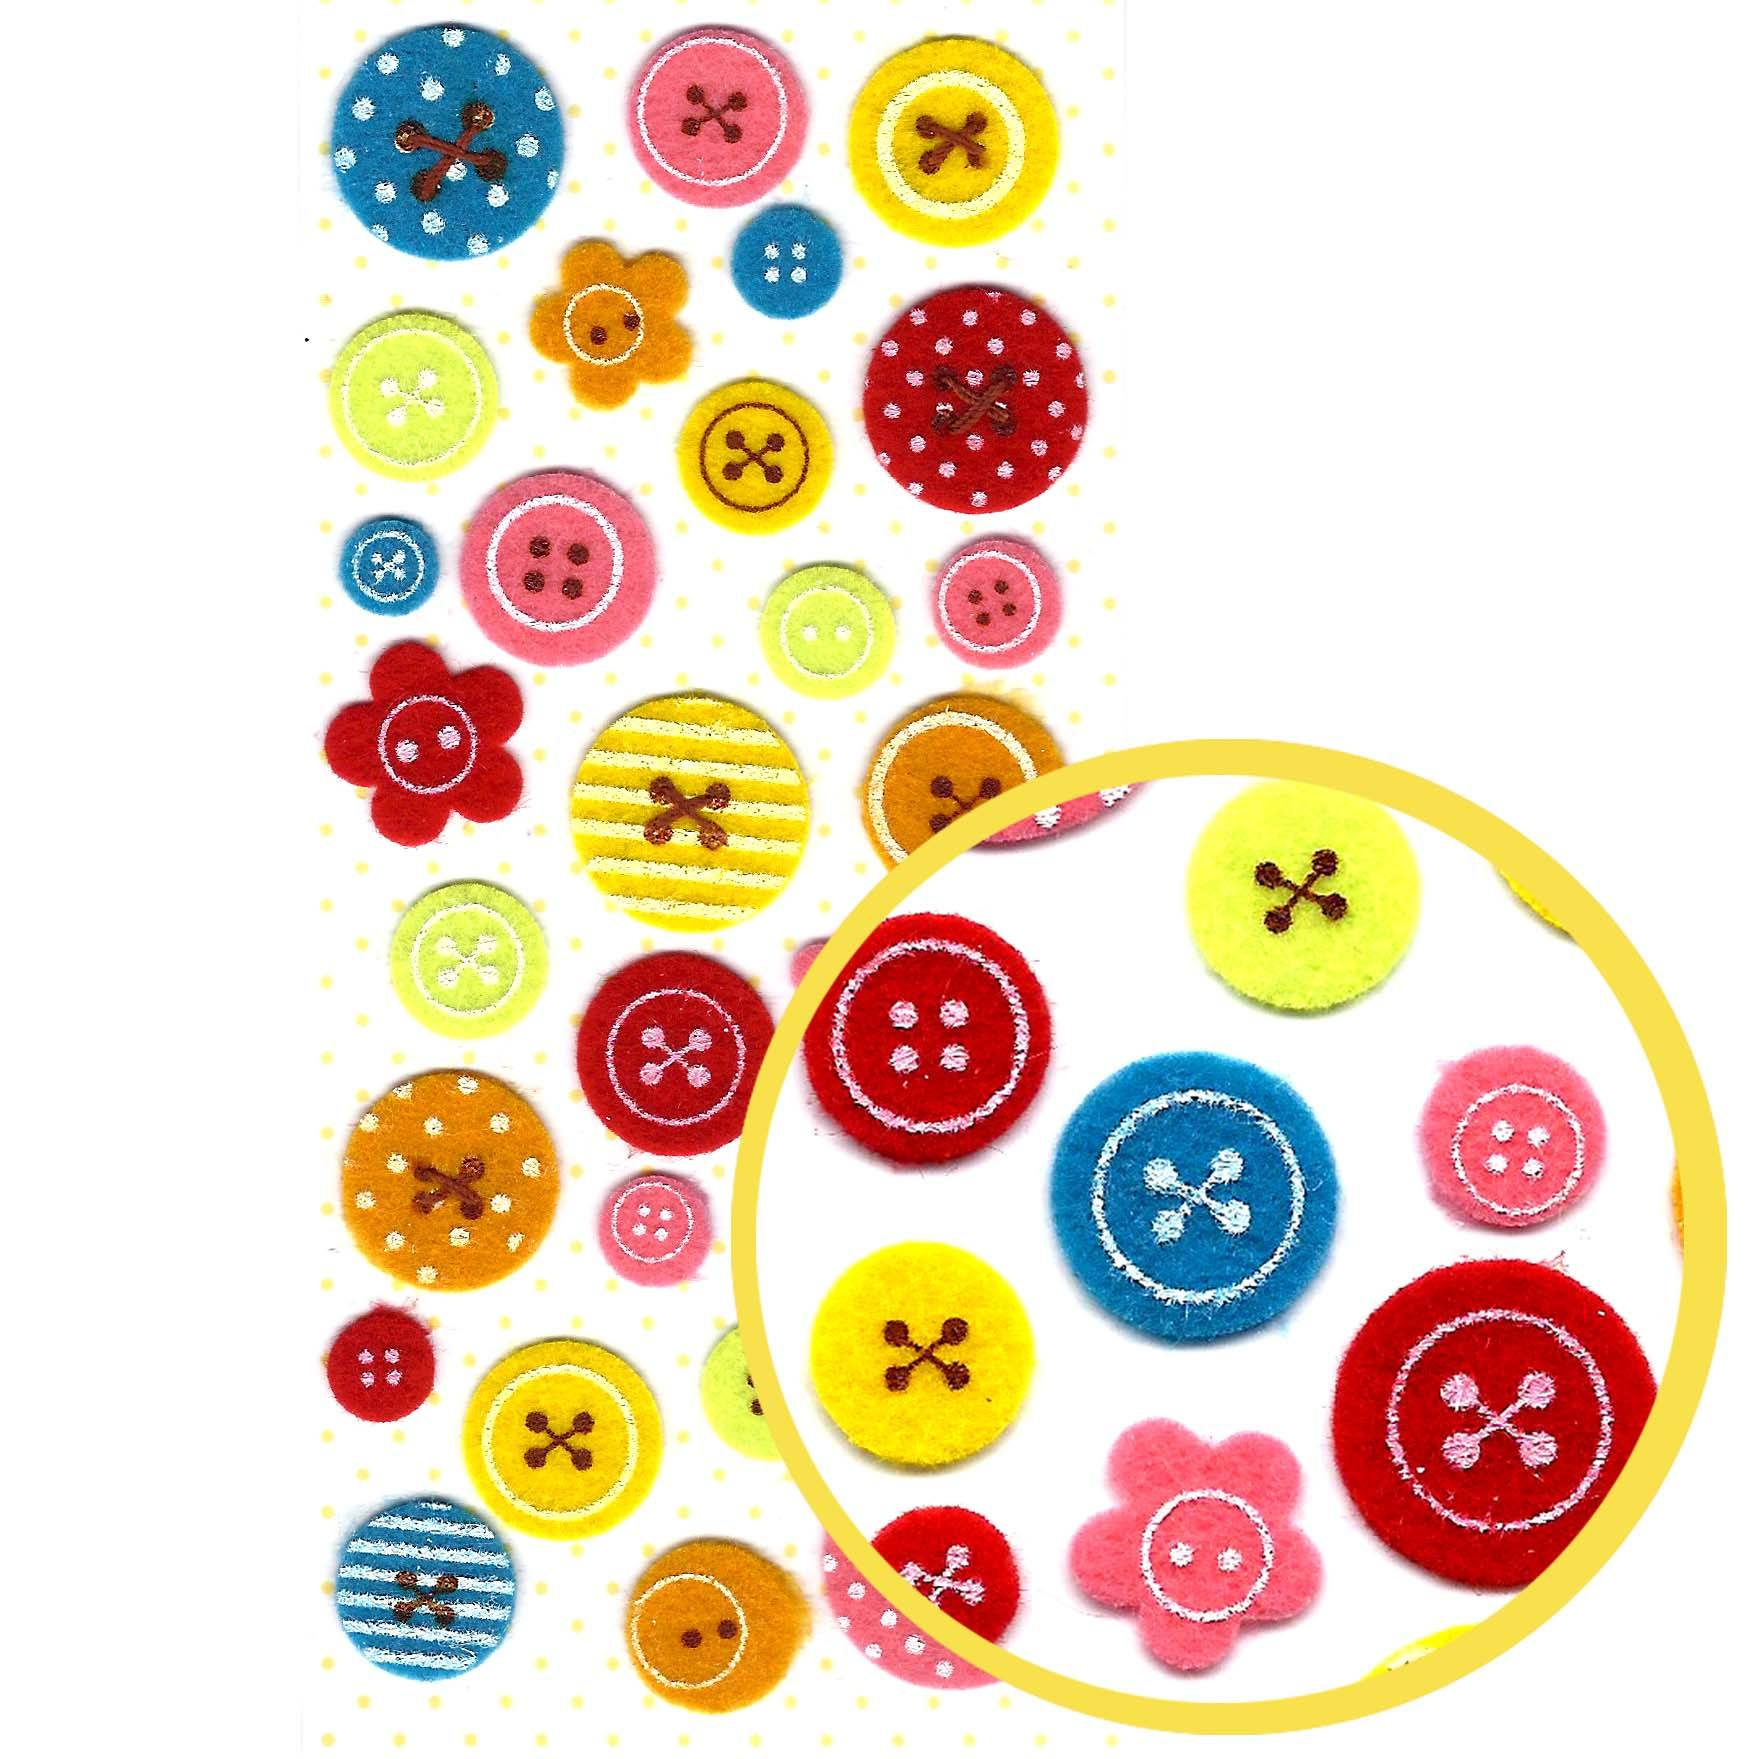 Colorful Button Shaped Fuzzy Felt Decorative Envelope Sticker Seals